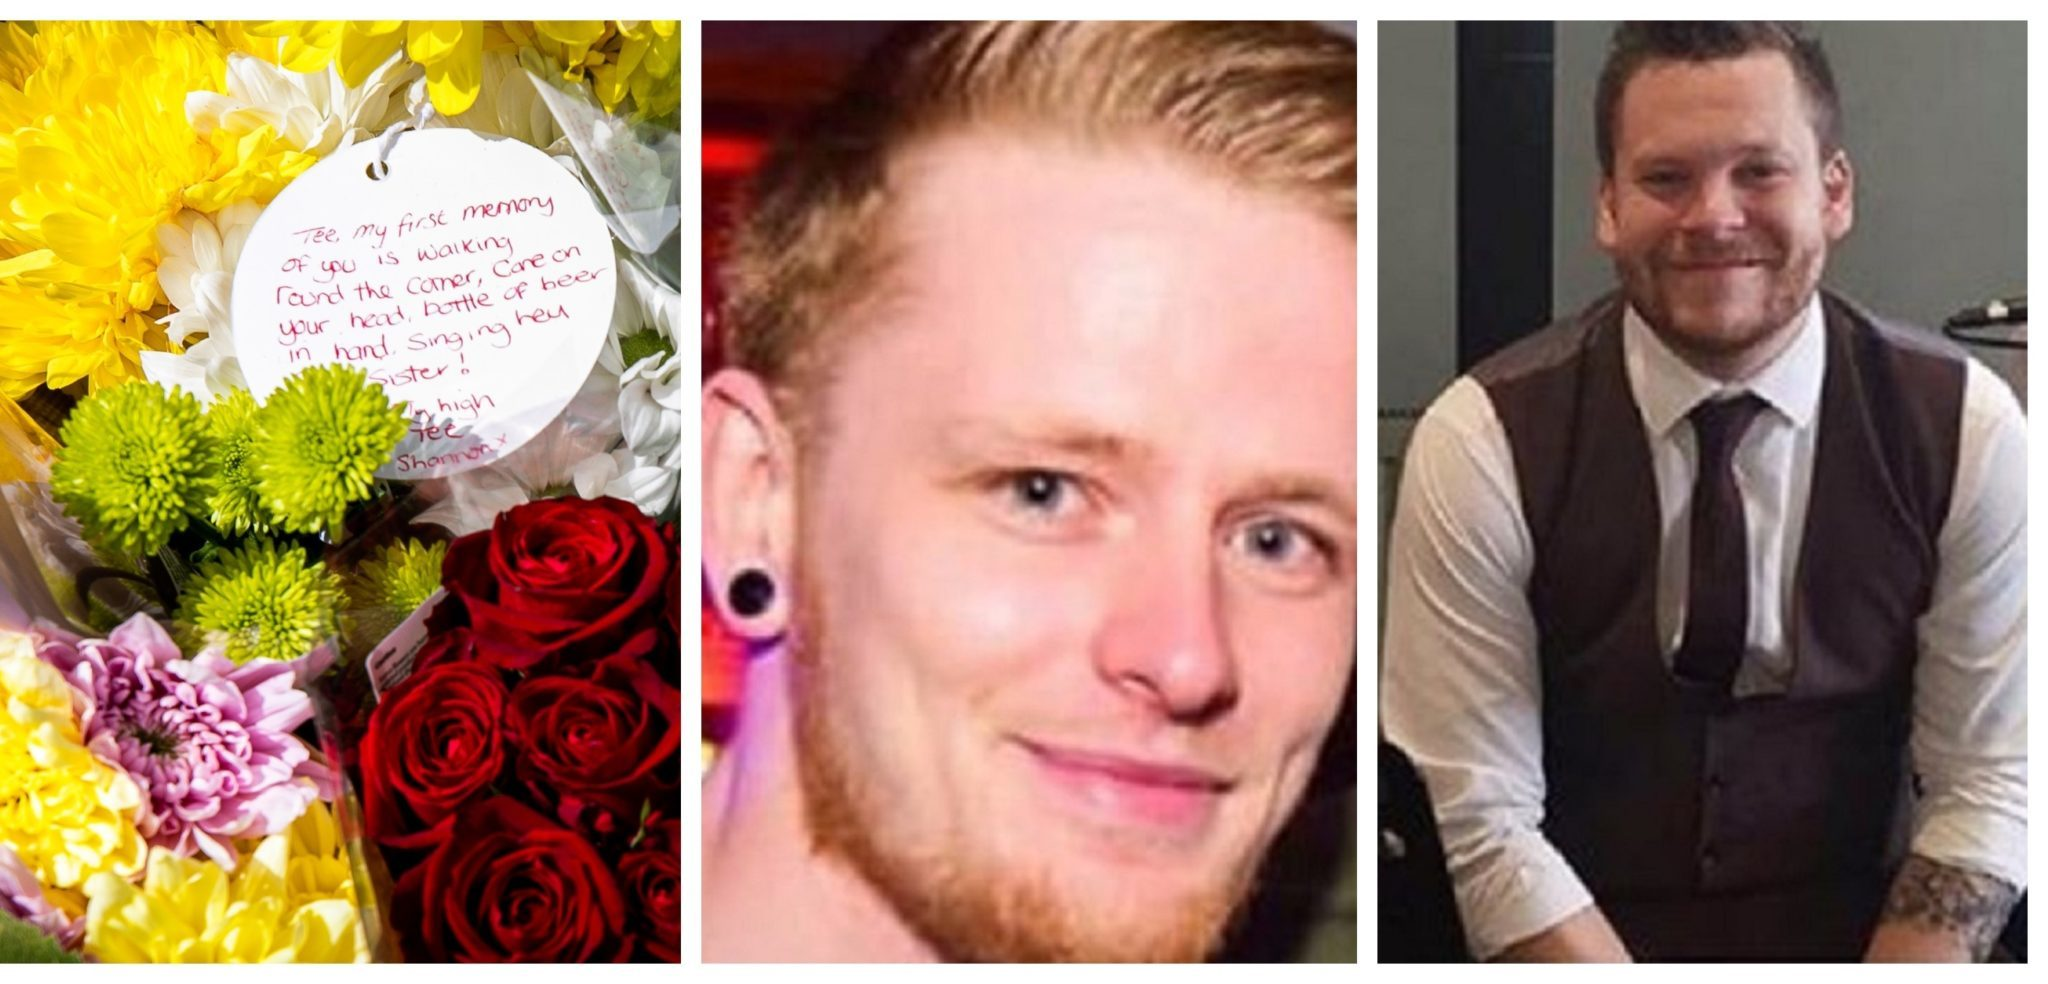 Tributes have been paid to Terence and Danny.